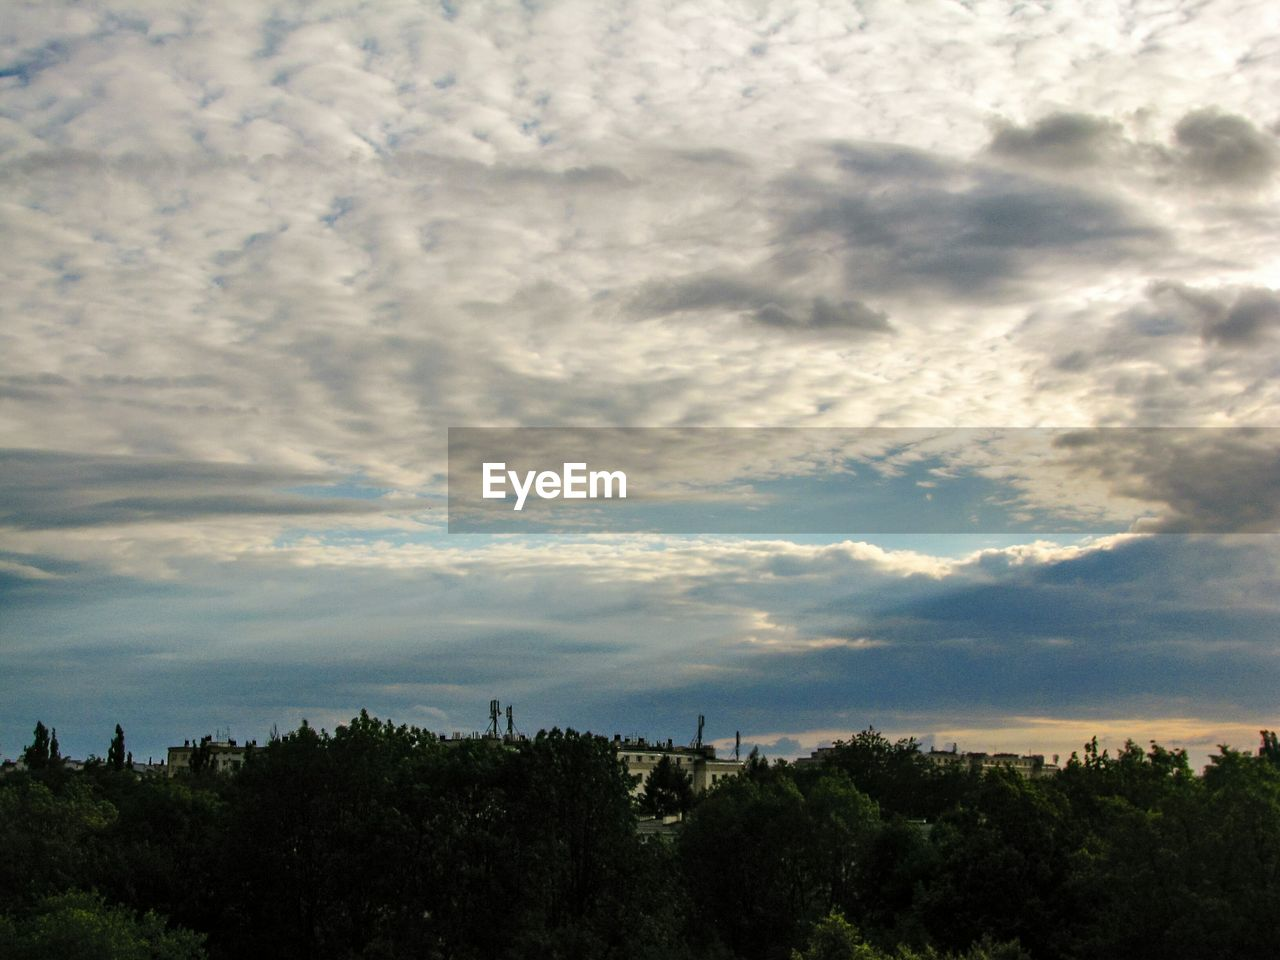 cloud - sky, tree, sky, plant, beauty in nature, scenics - nature, tranquil scene, nature, tranquility, no people, outdoors, growth, environment, landscape, day, non-urban scene, idyllic, land, forest